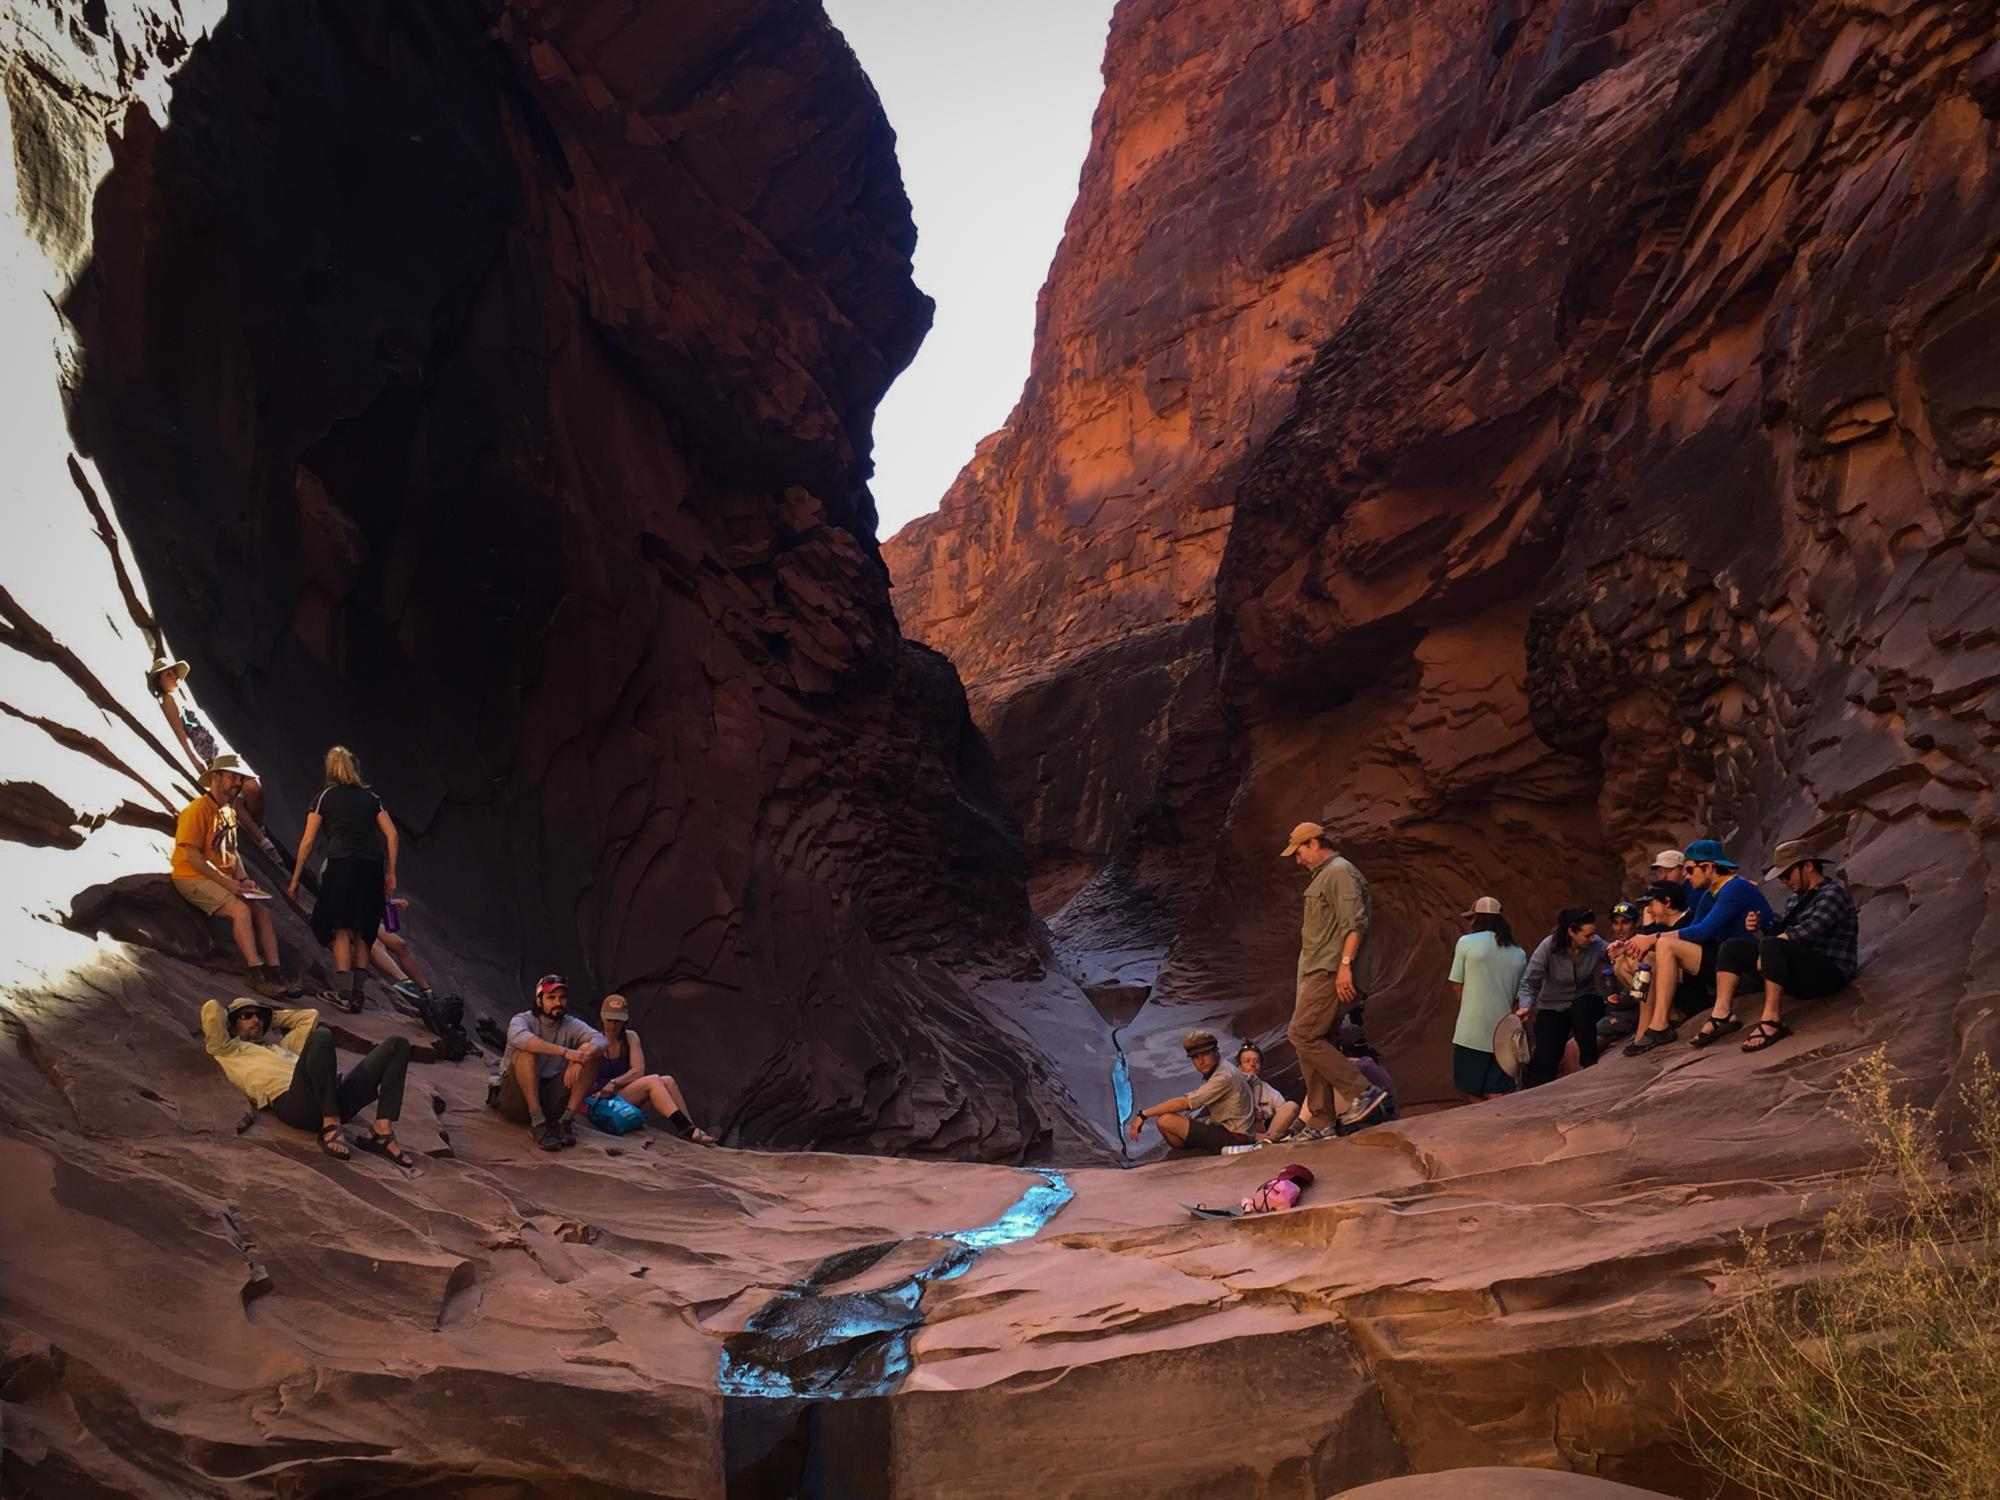 Students in North Canyon of Grand Canyon